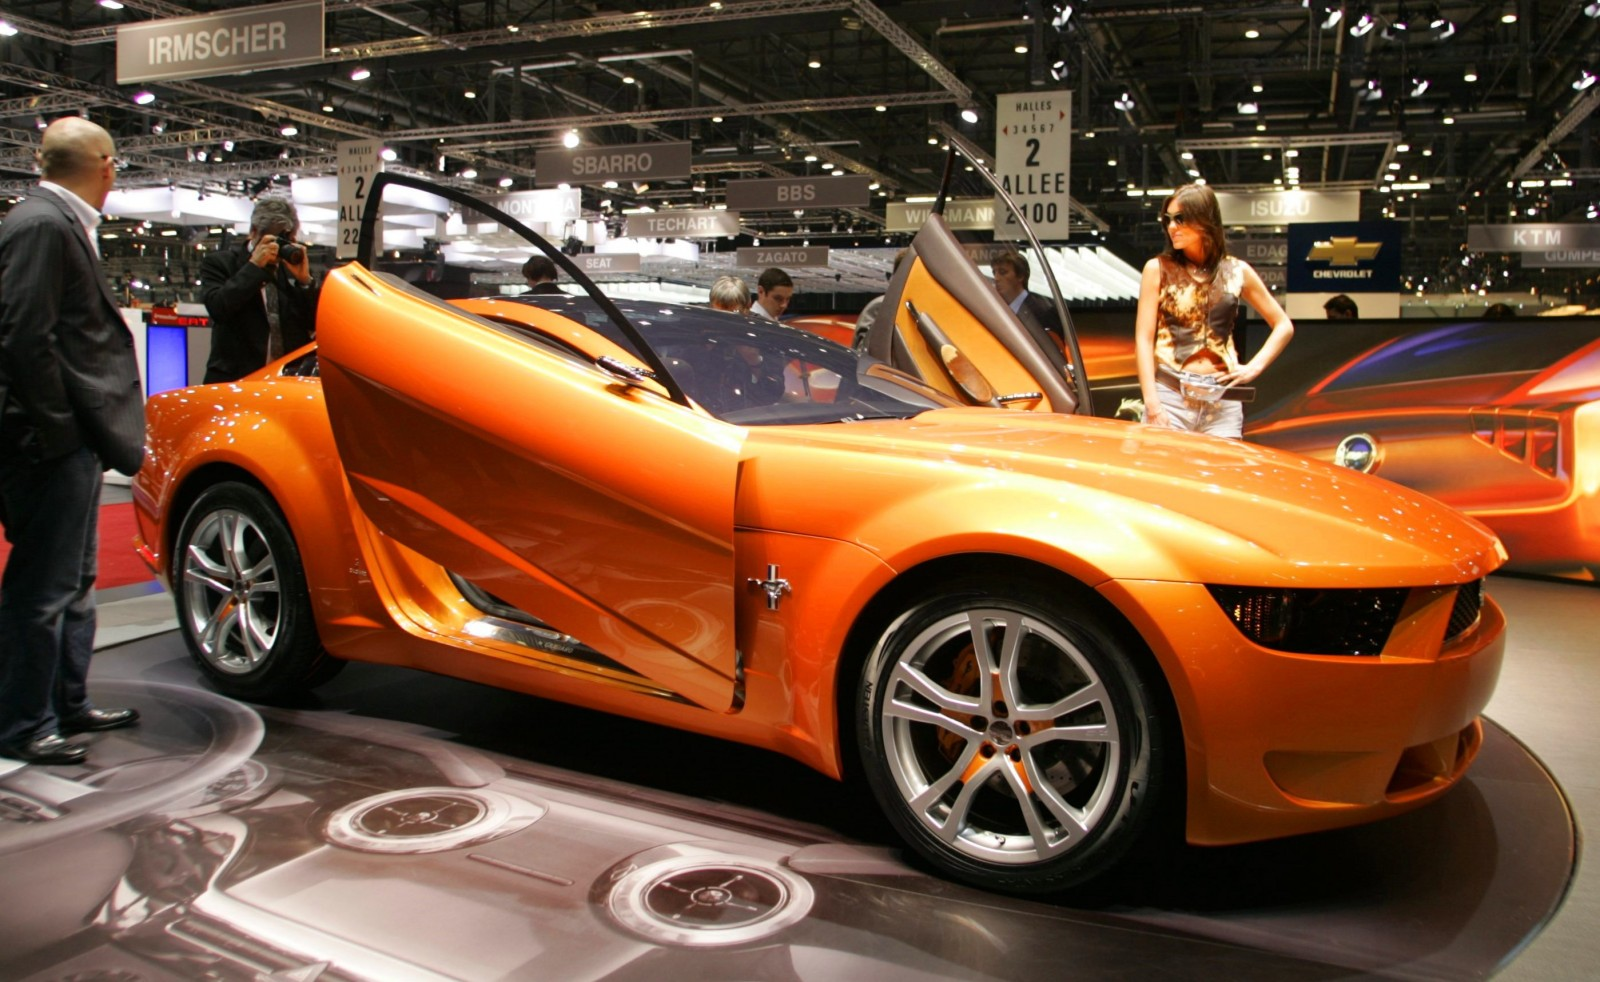 2006 Giugiaro Ford Mustang Concept Was Ringer vs In-House Ford Designs 1